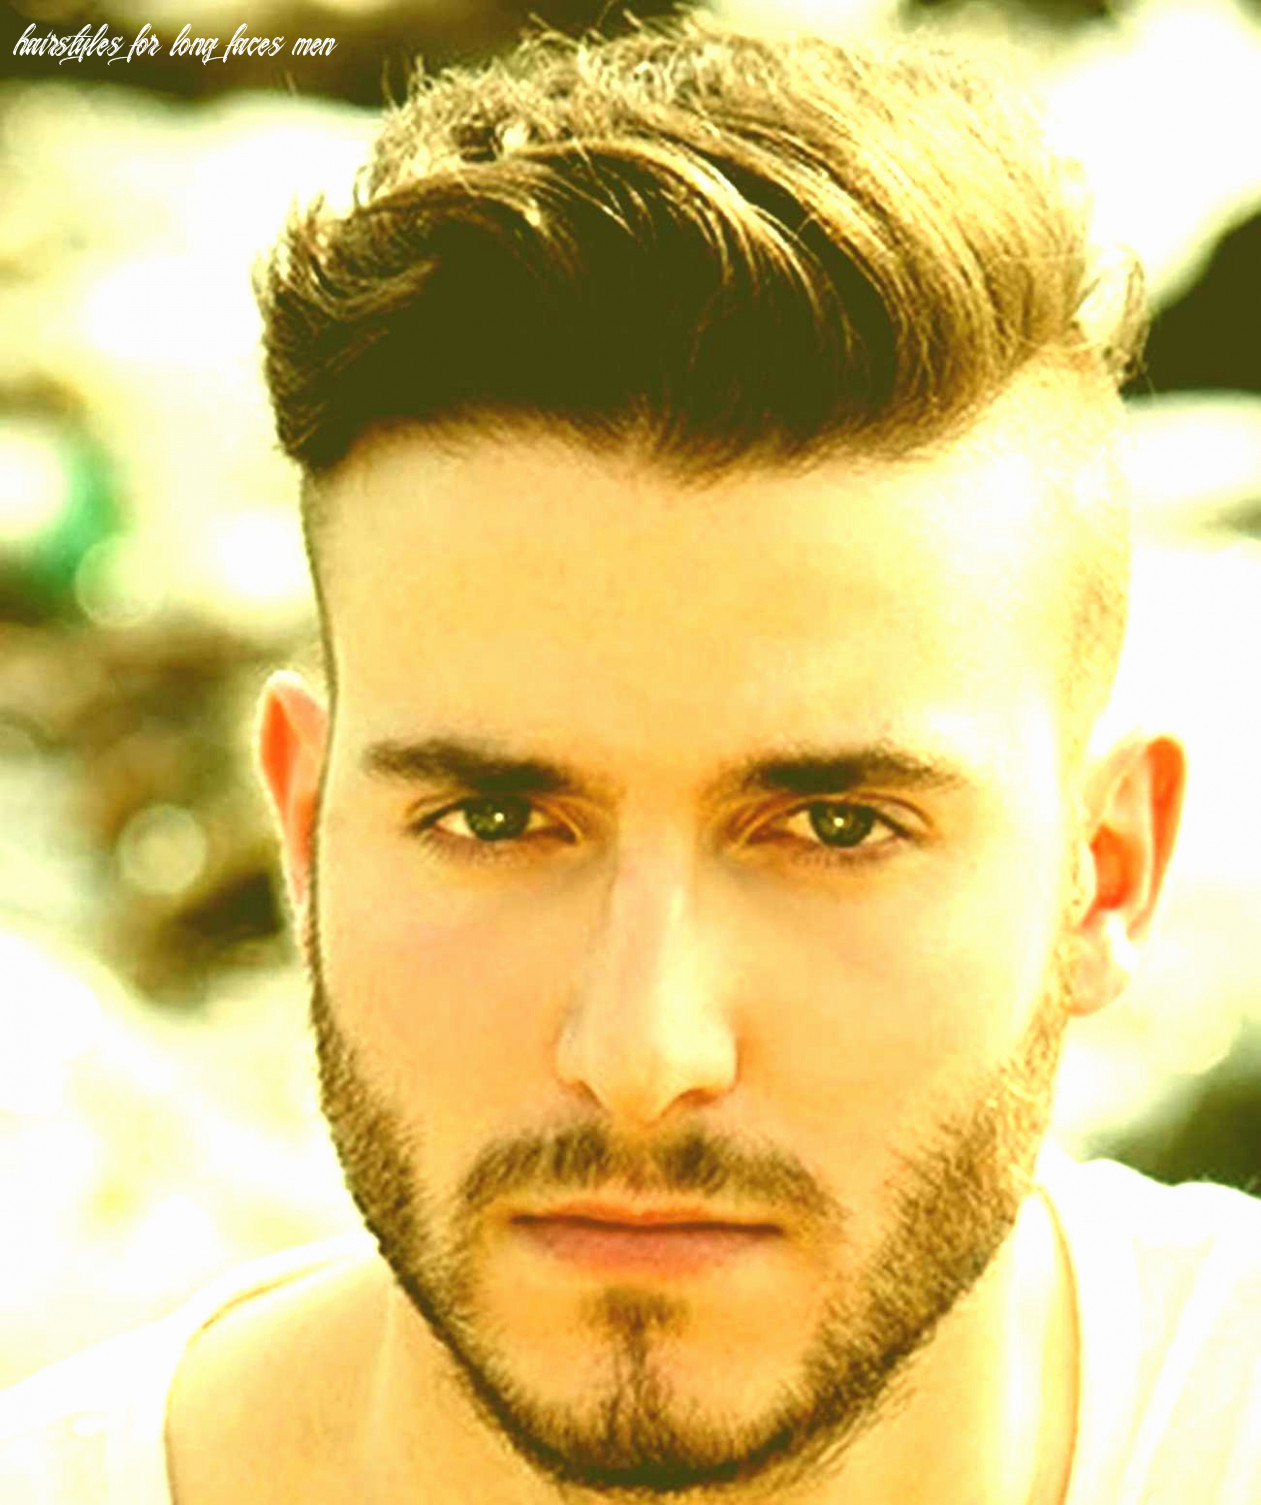 Short hairstyles for long faces men awesome best hairstyle for